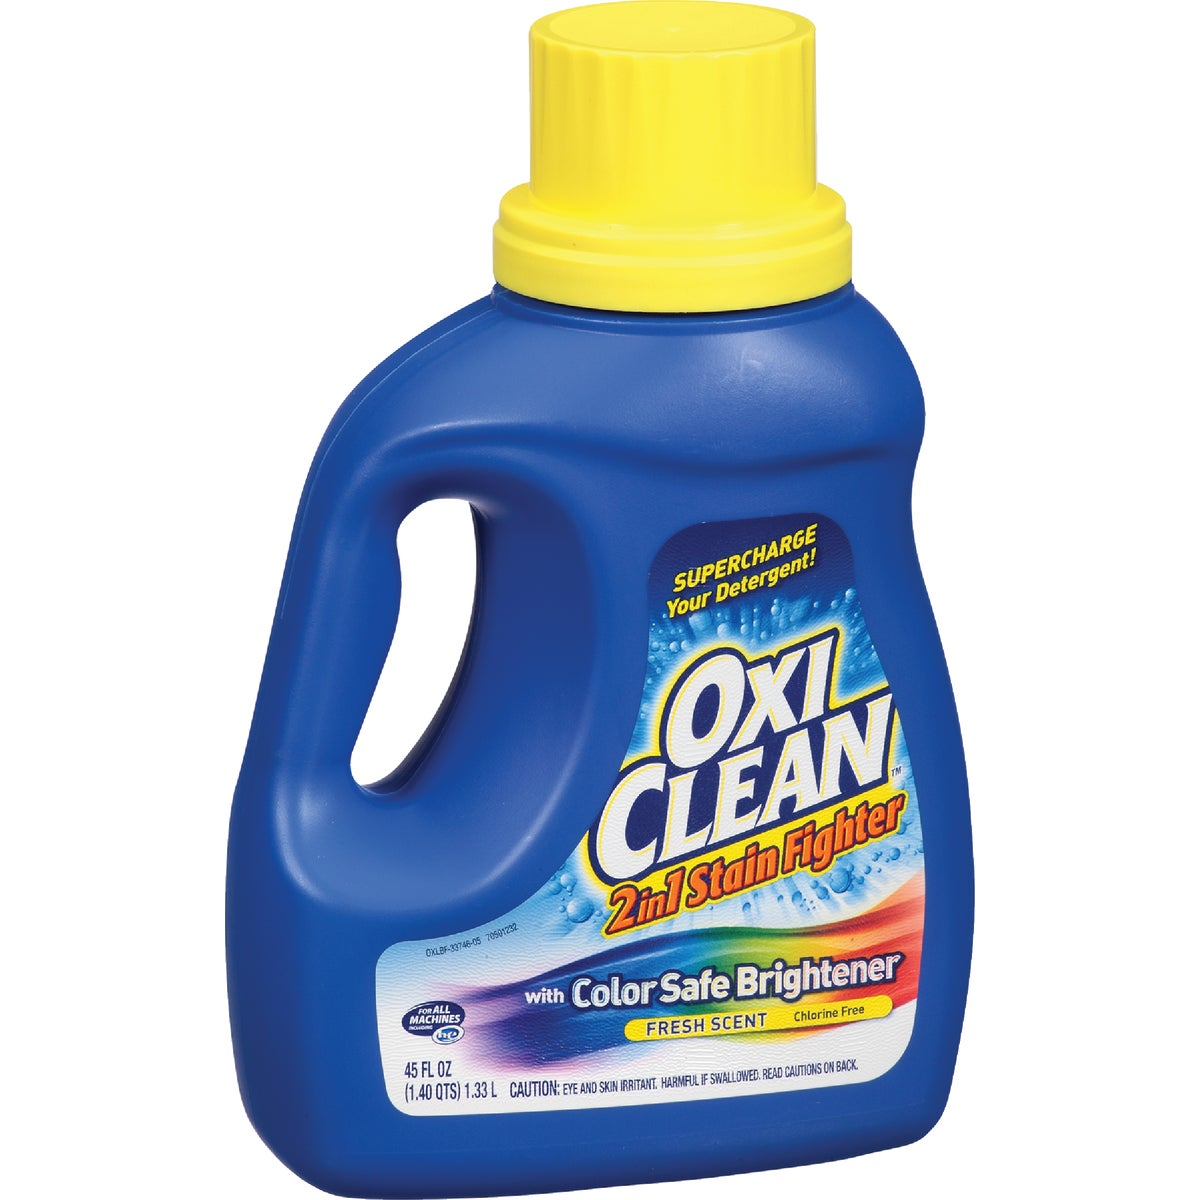 OXI CLEAN STAIN FIGHTER - 33746 by Church & Dwight Co